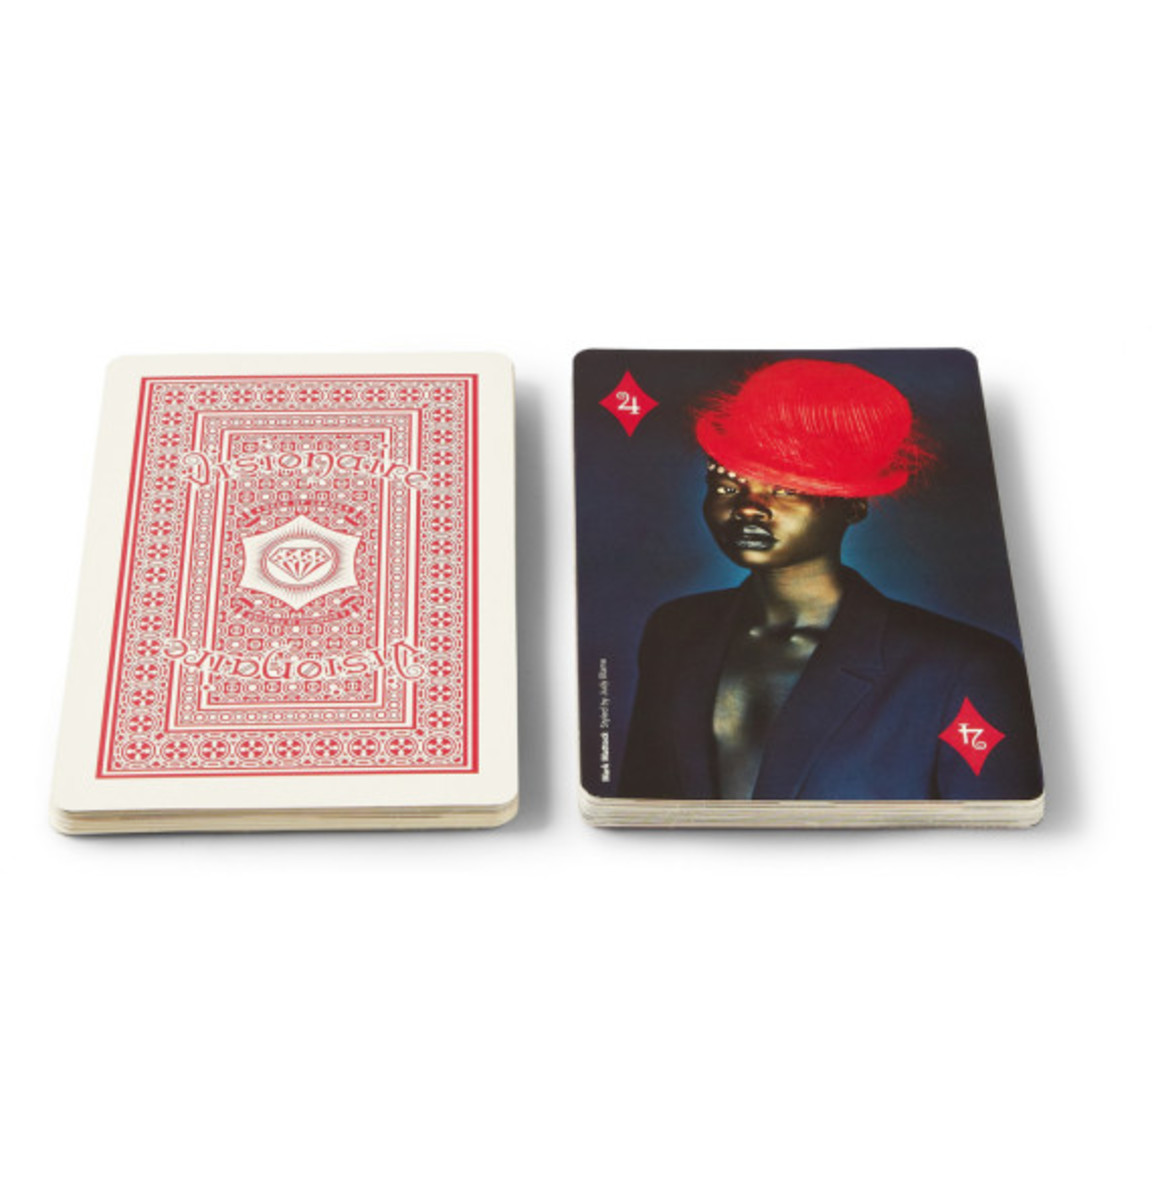 VISIONAIRE 21: Deck Of Cards/The Diamond Issue | Embedded With Real Diamonds - 7